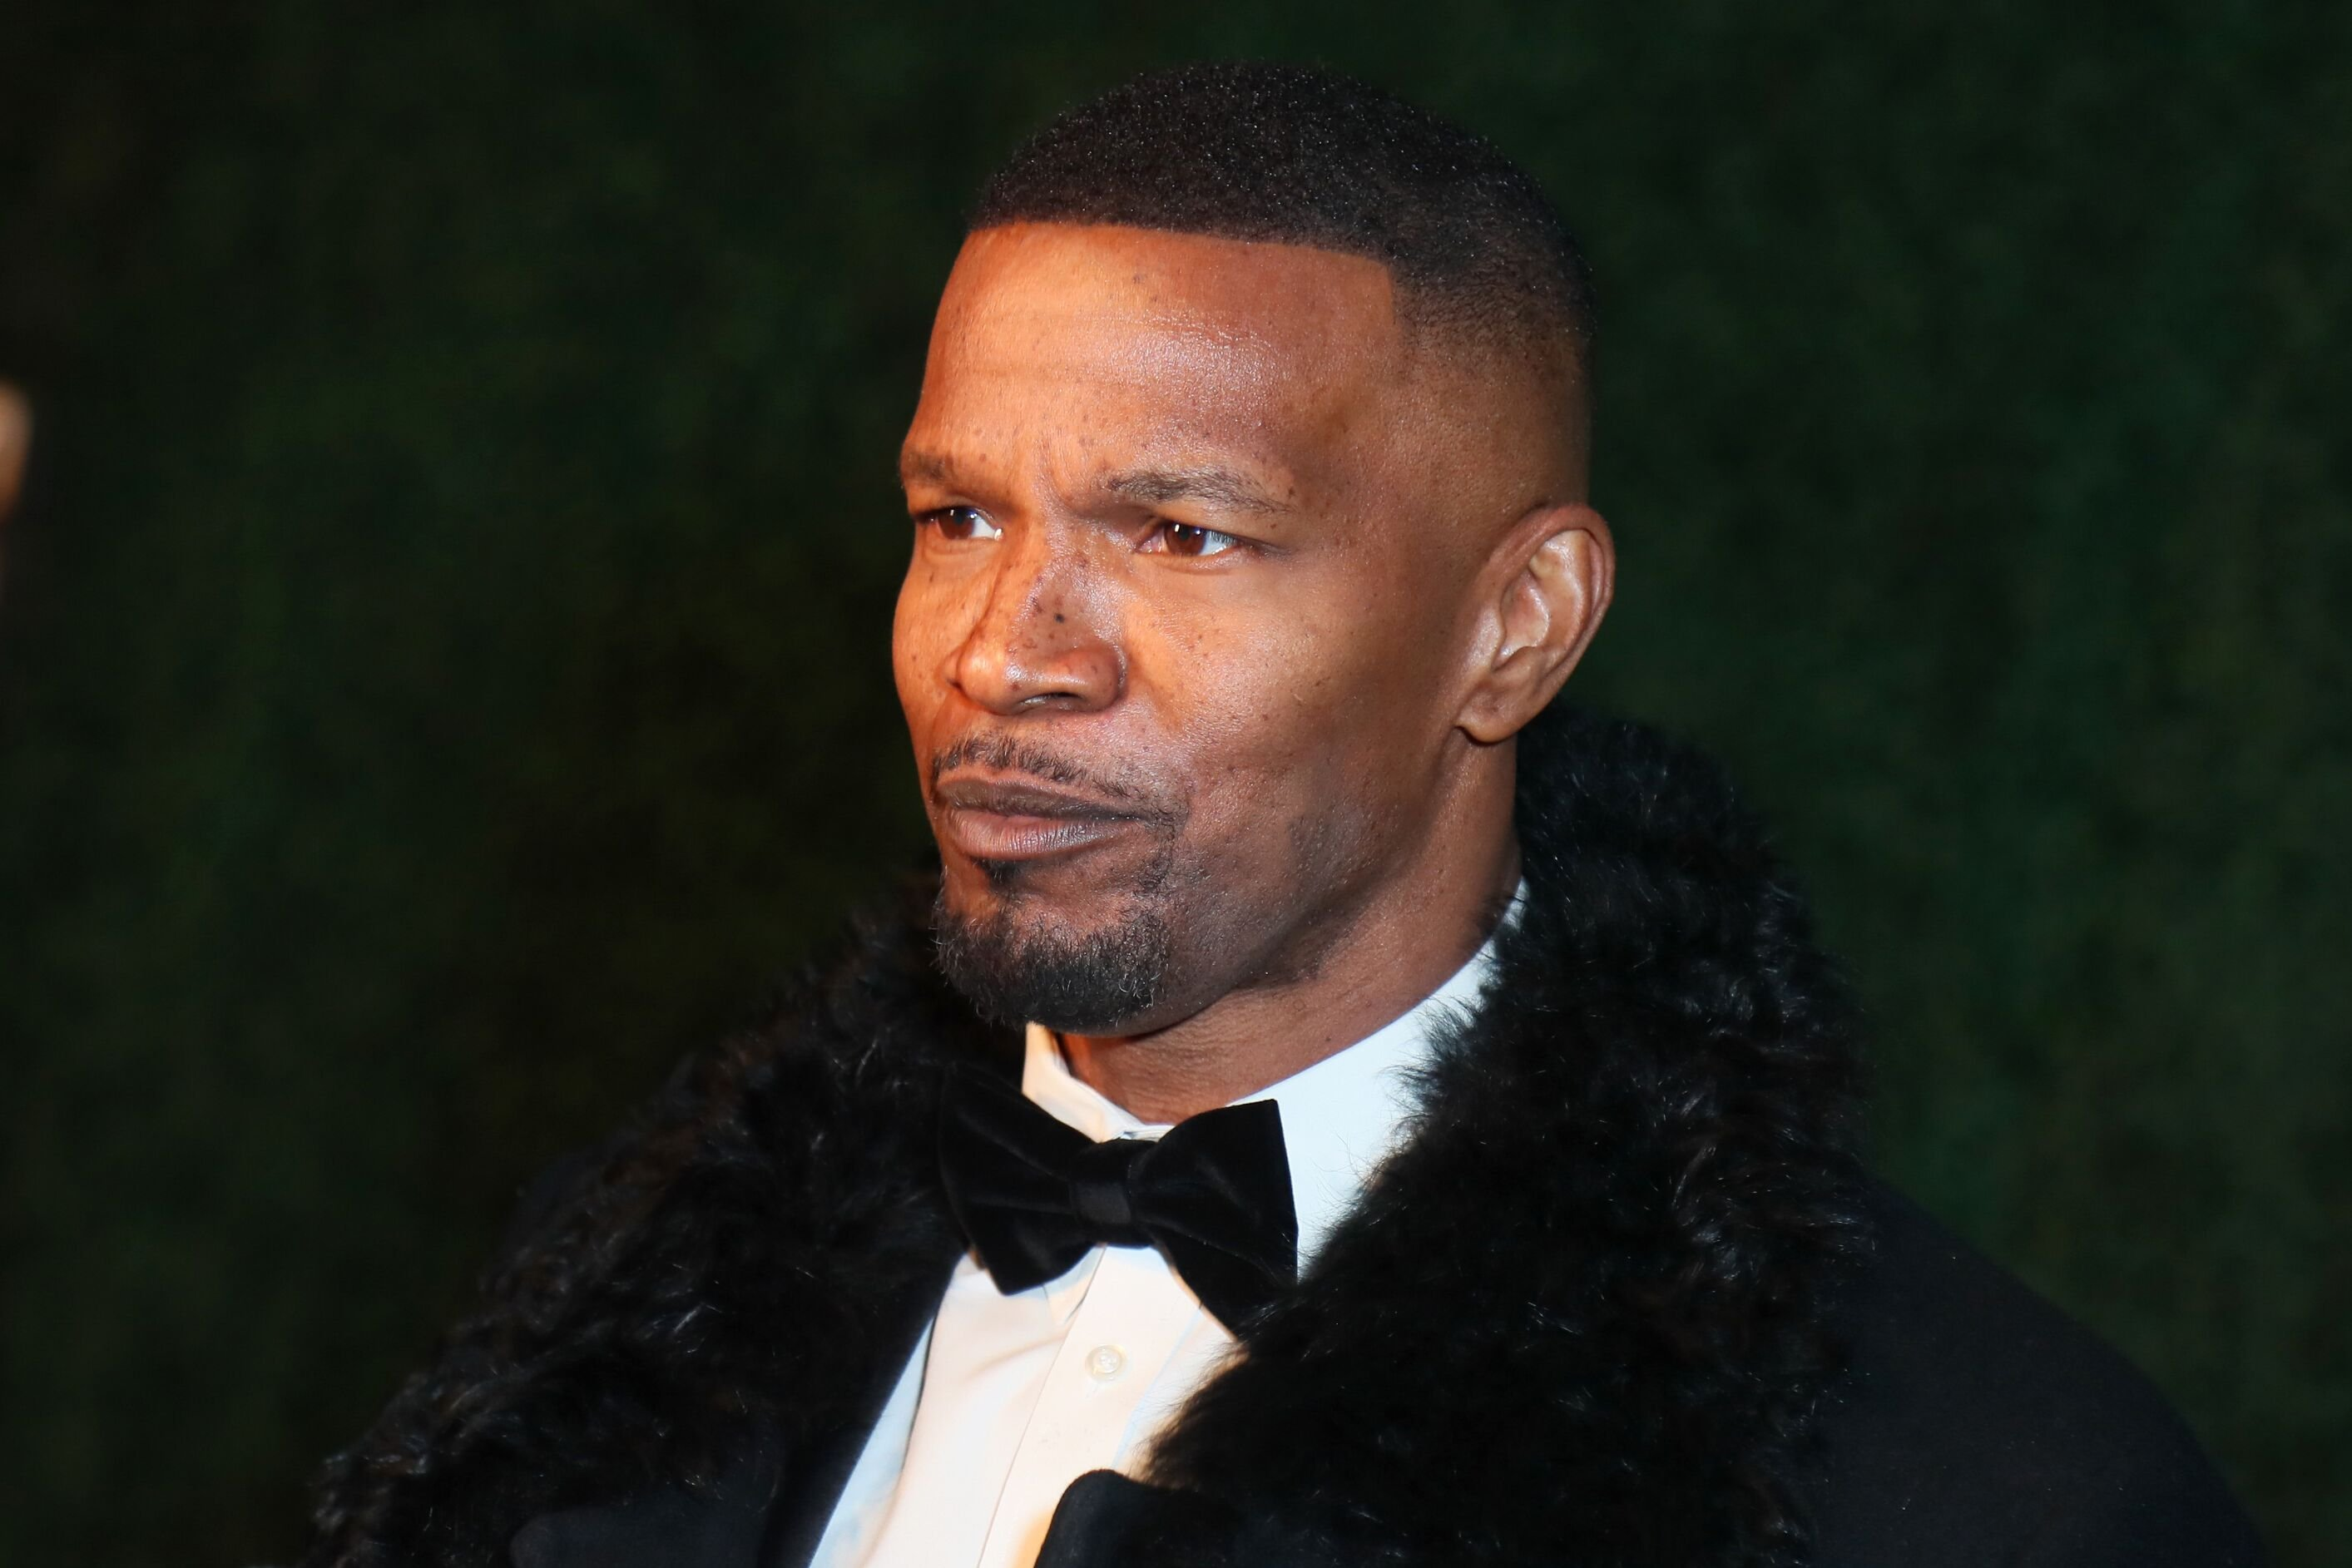 Jamie Foxx at the  2019 Governors Awards/ Source: Getty Image